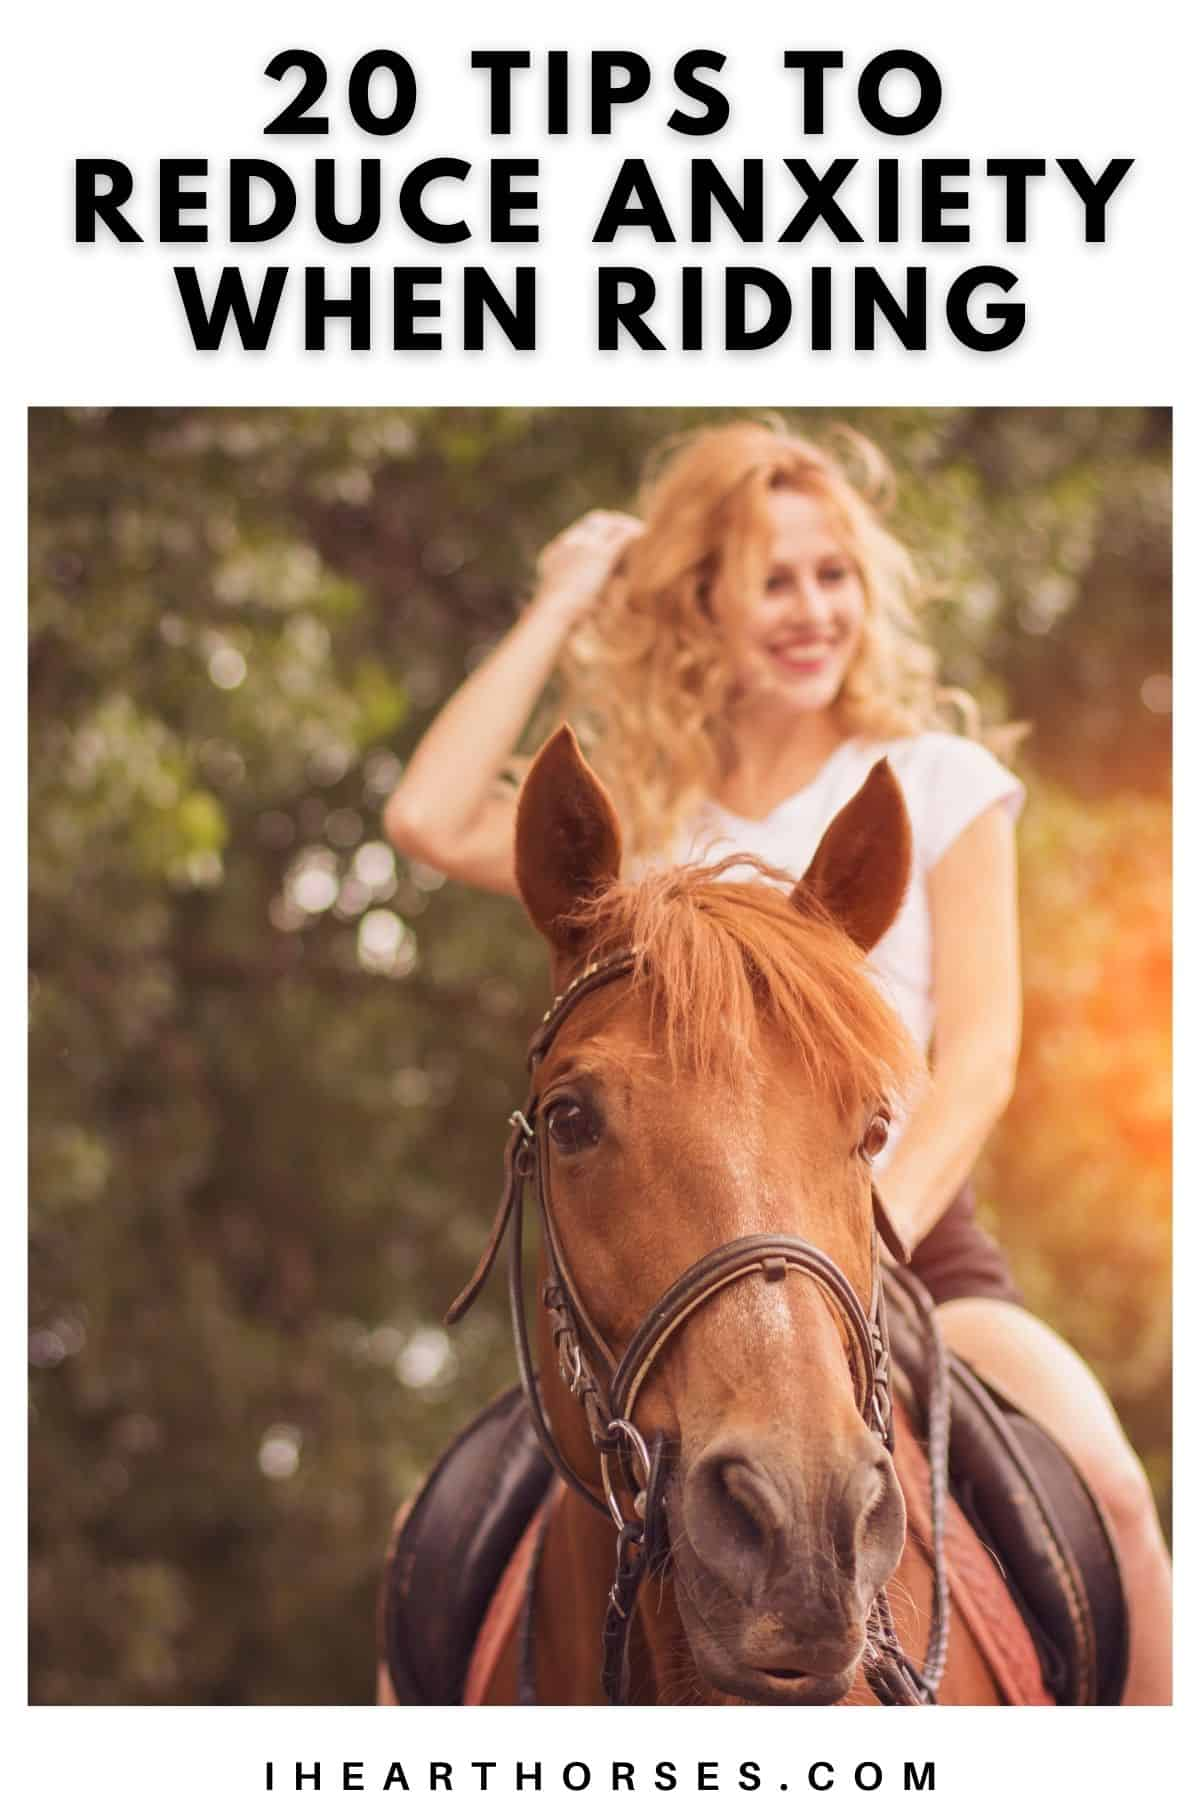 Woman smiling on brown horse